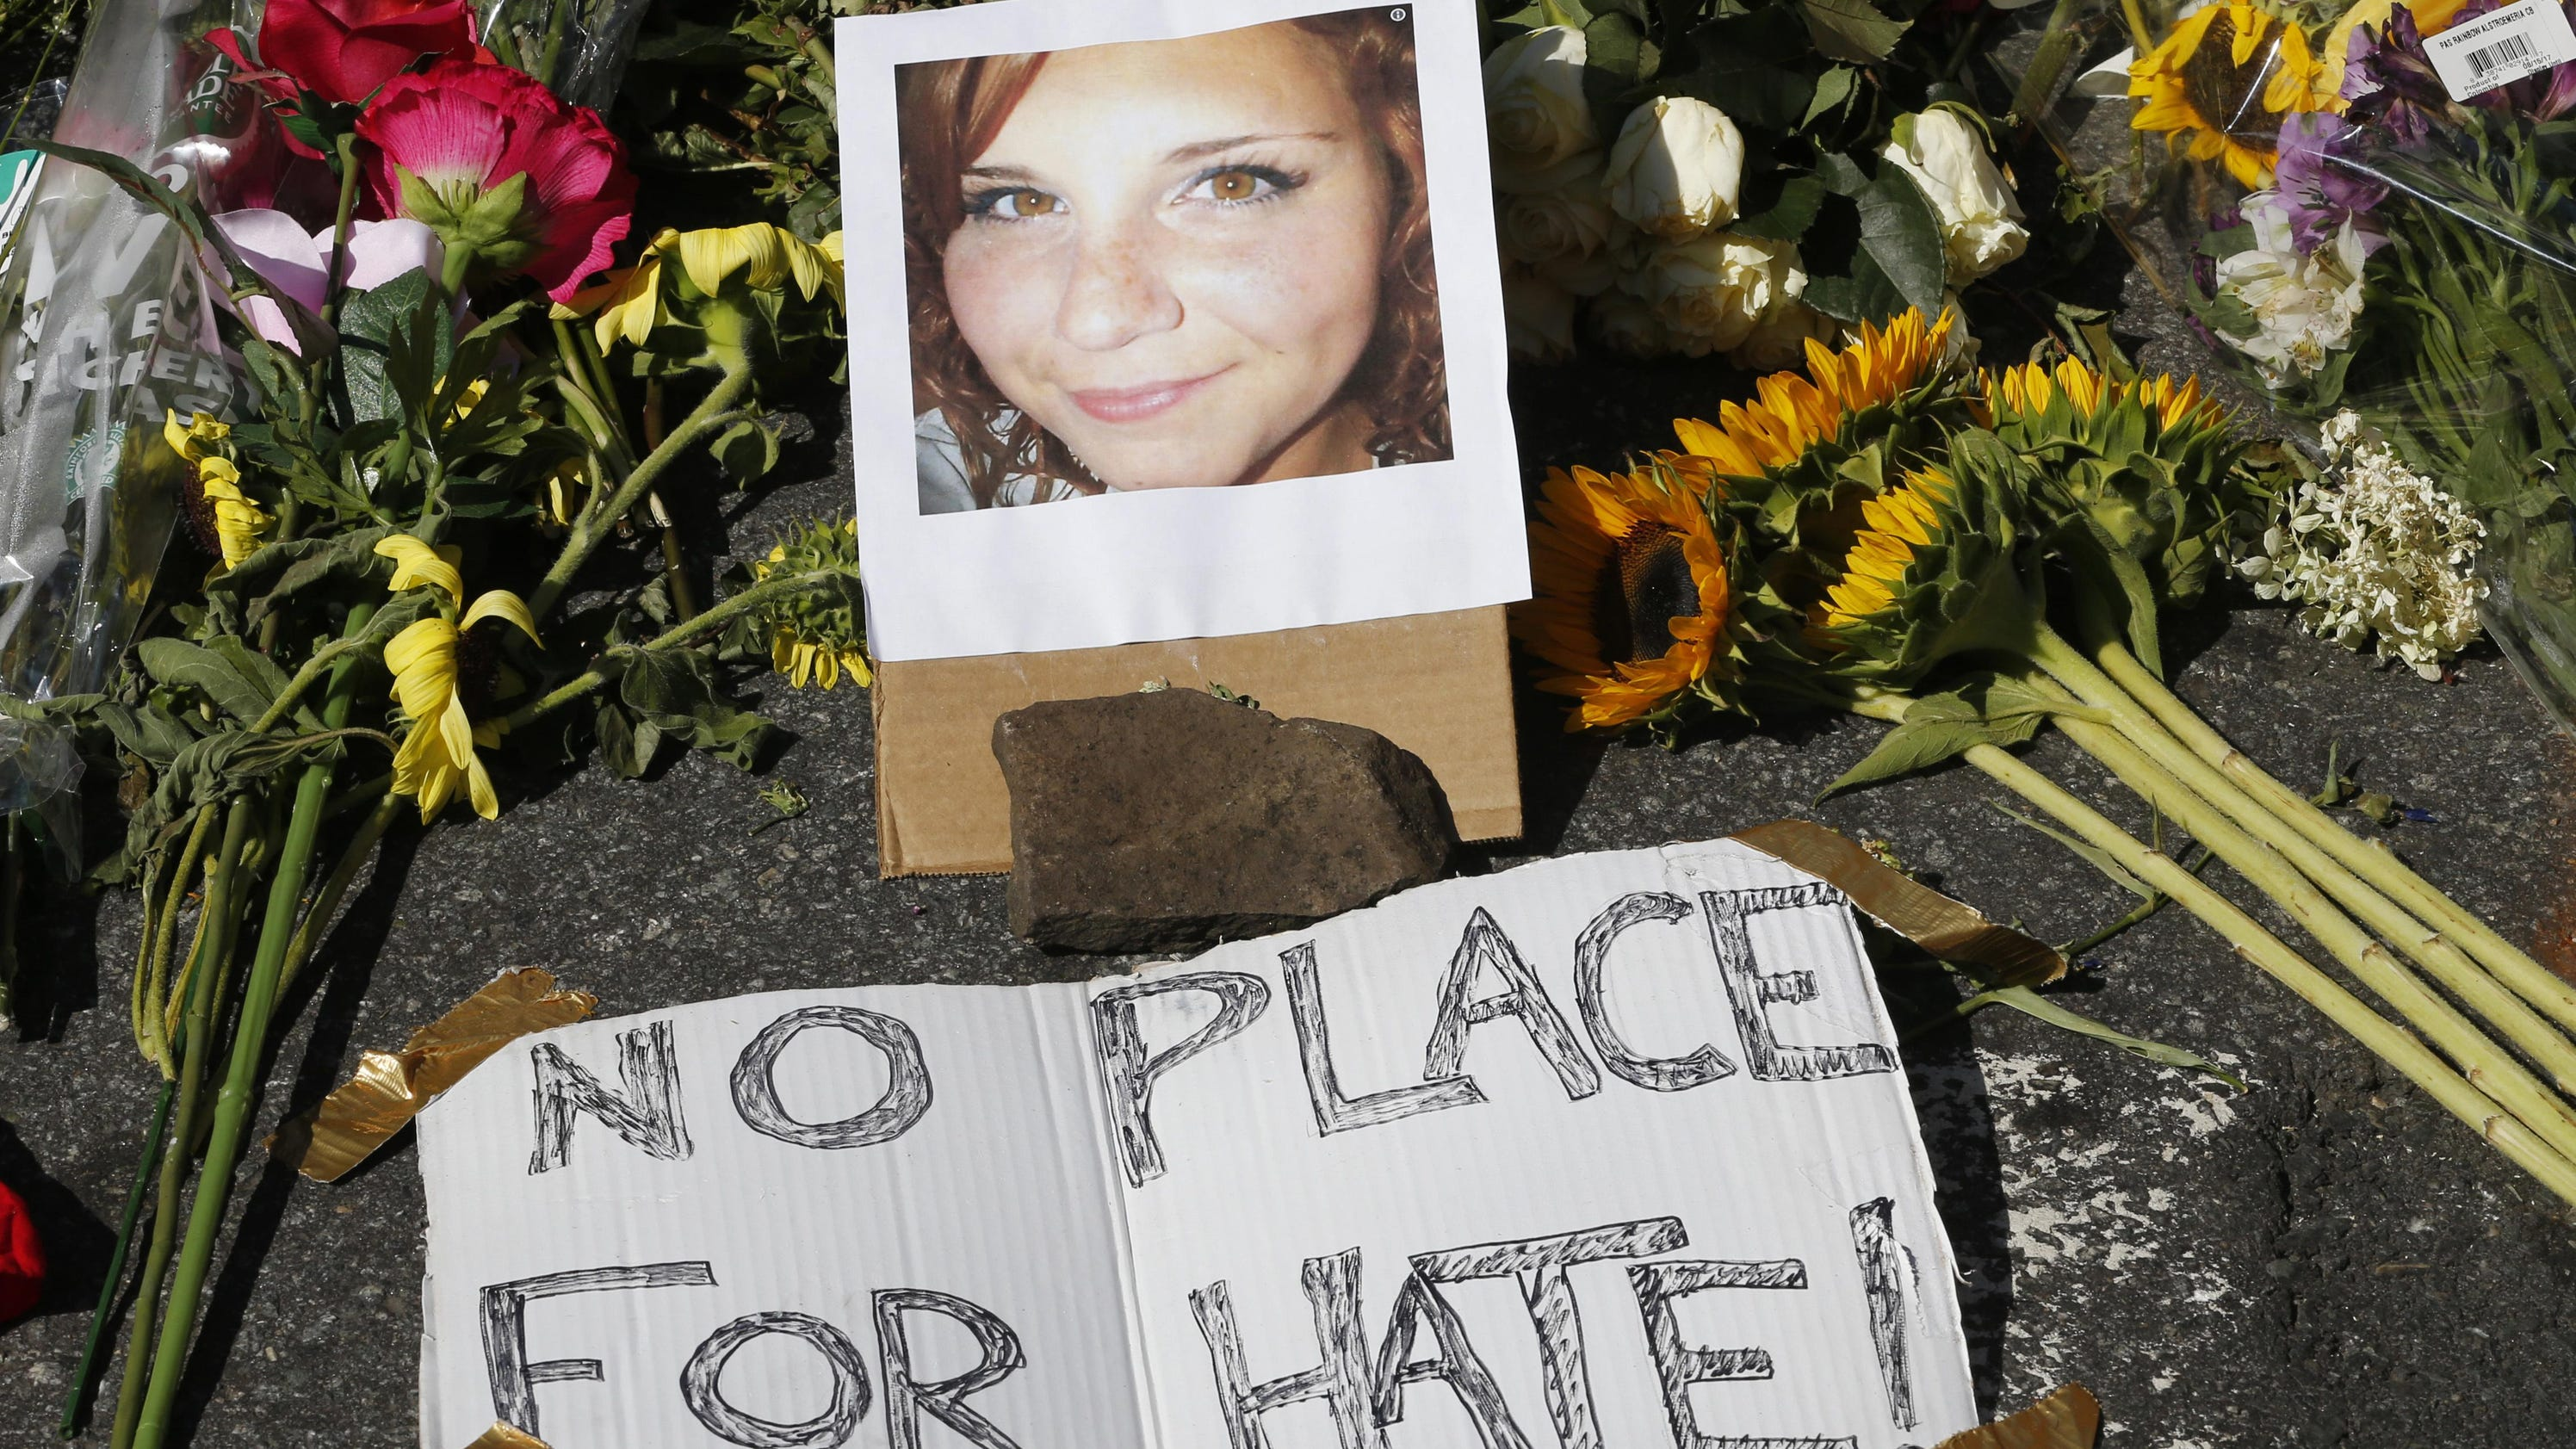 newsobserver.com Mourners gather to remember woman killed at Va. rally